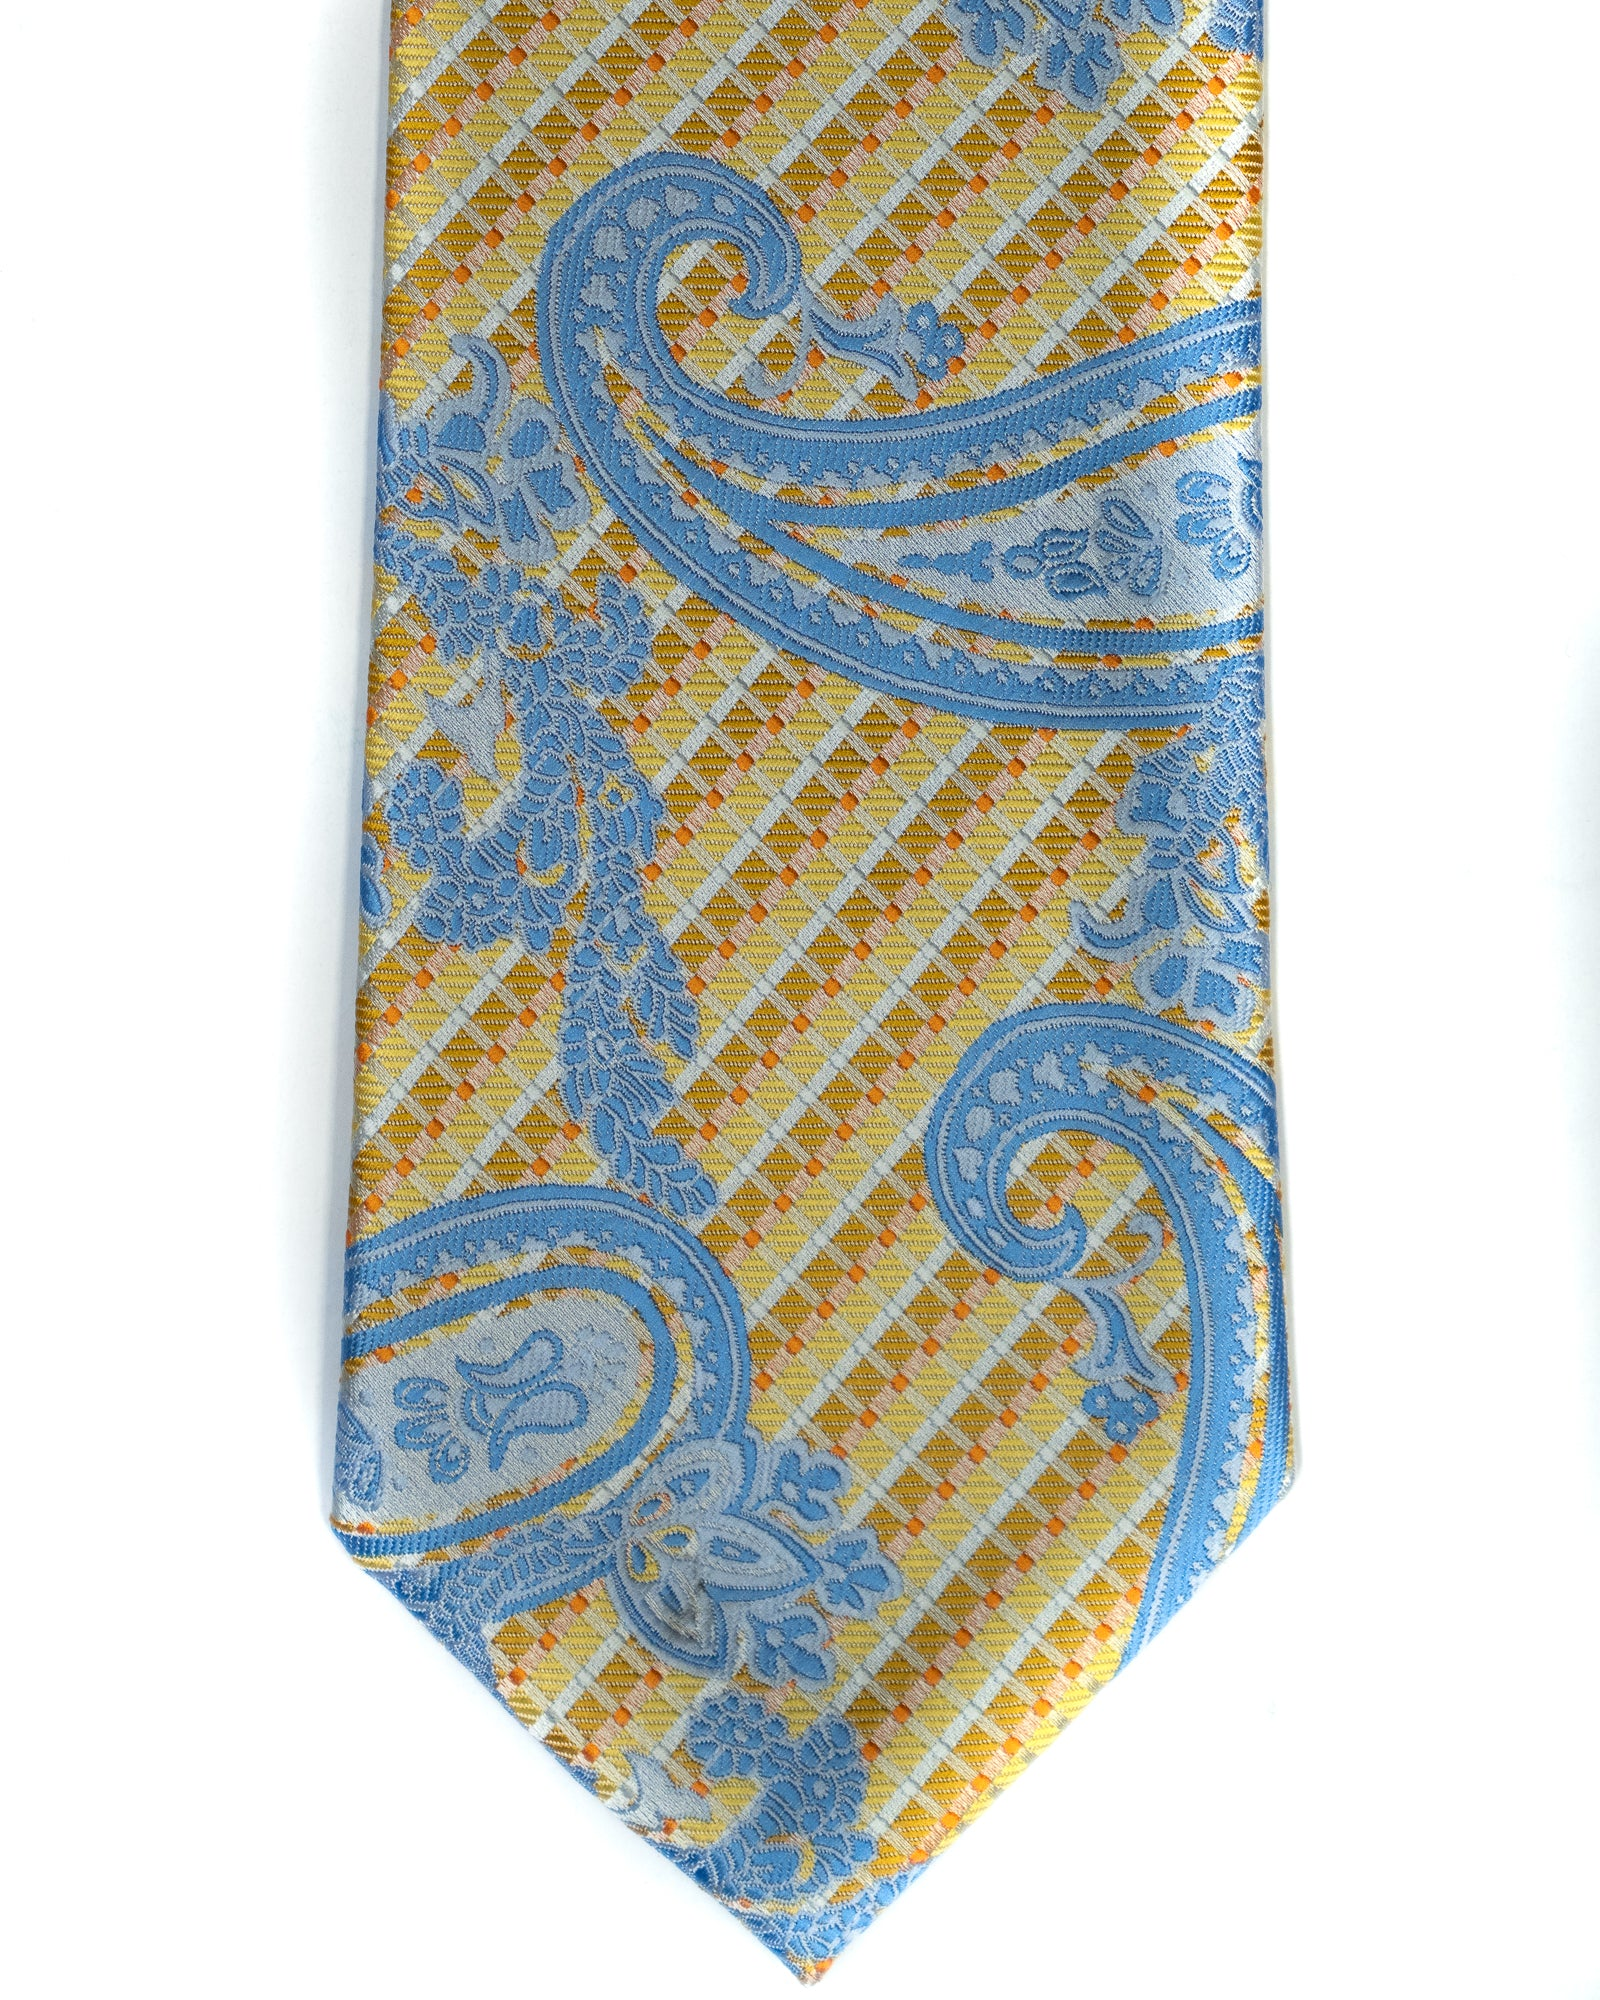 Venturi Uomo Paisley Tie in Yellow with Blue - Rainwater's